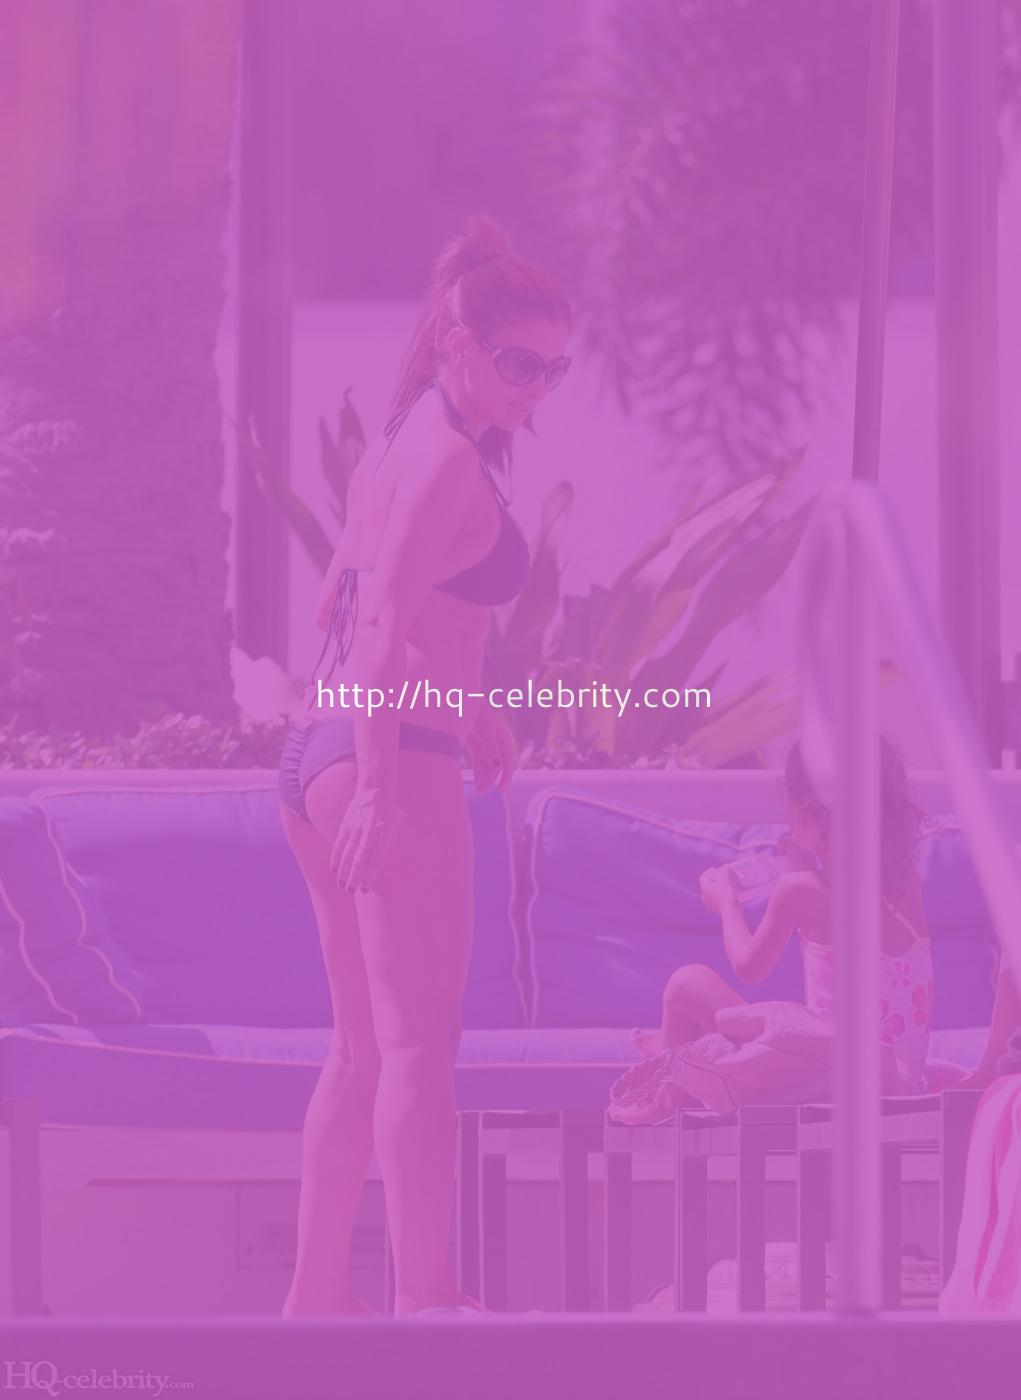 What celebrity has anxiety disorder